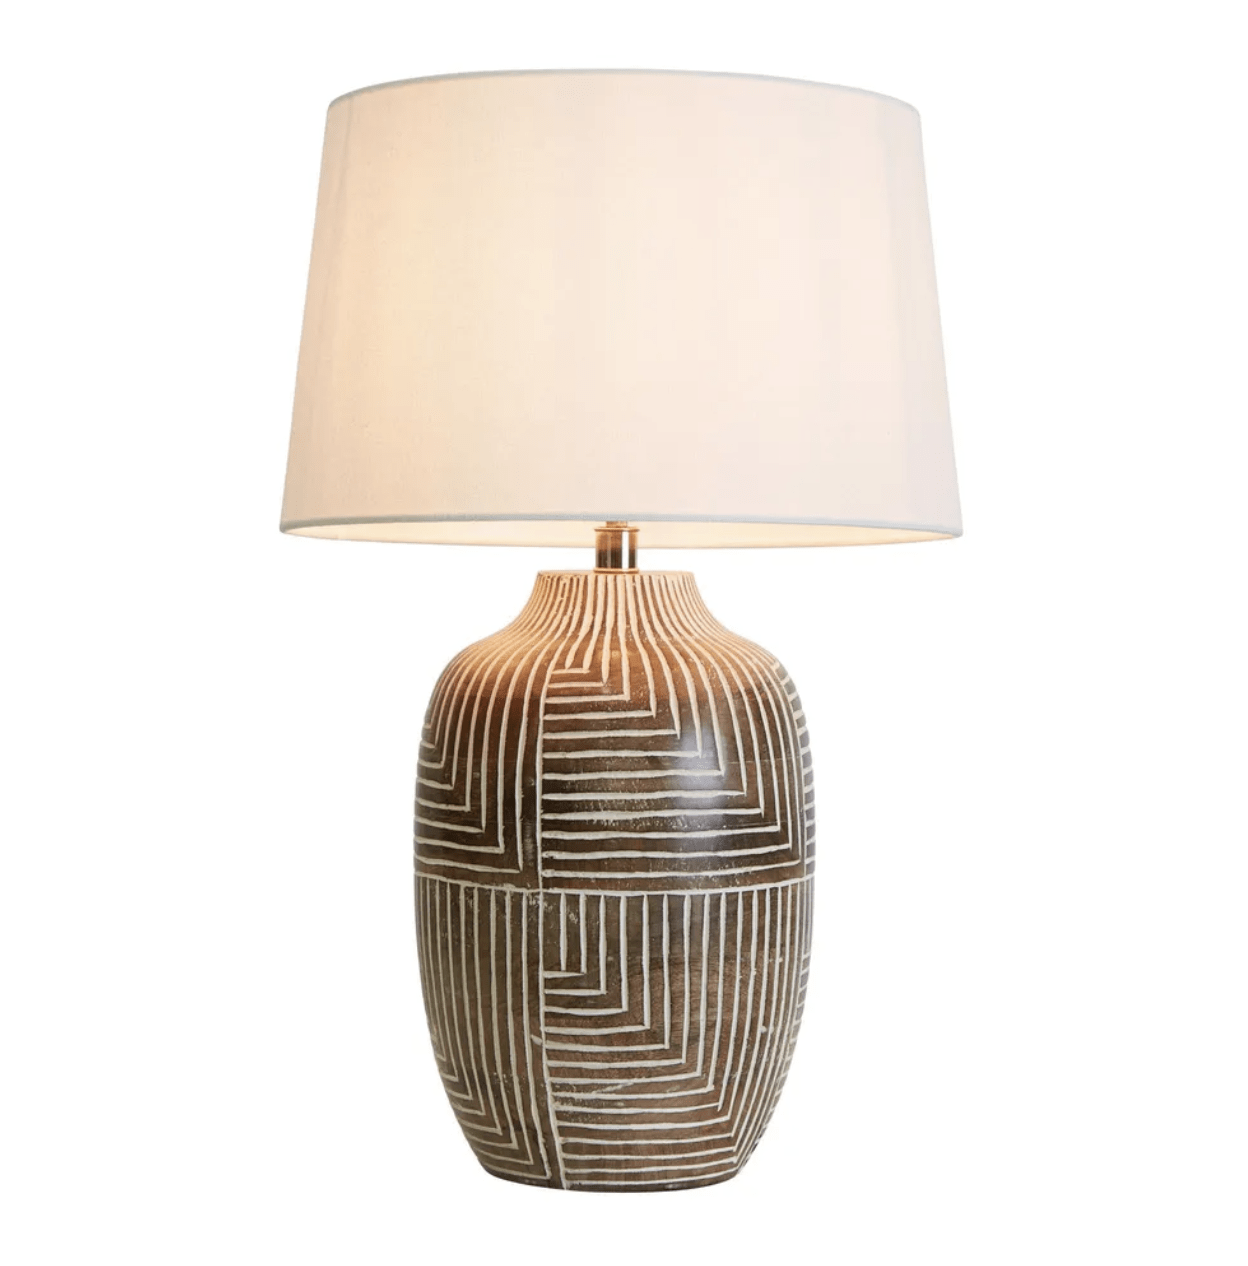 Table Lamps Avoca Wooden Table Lamp